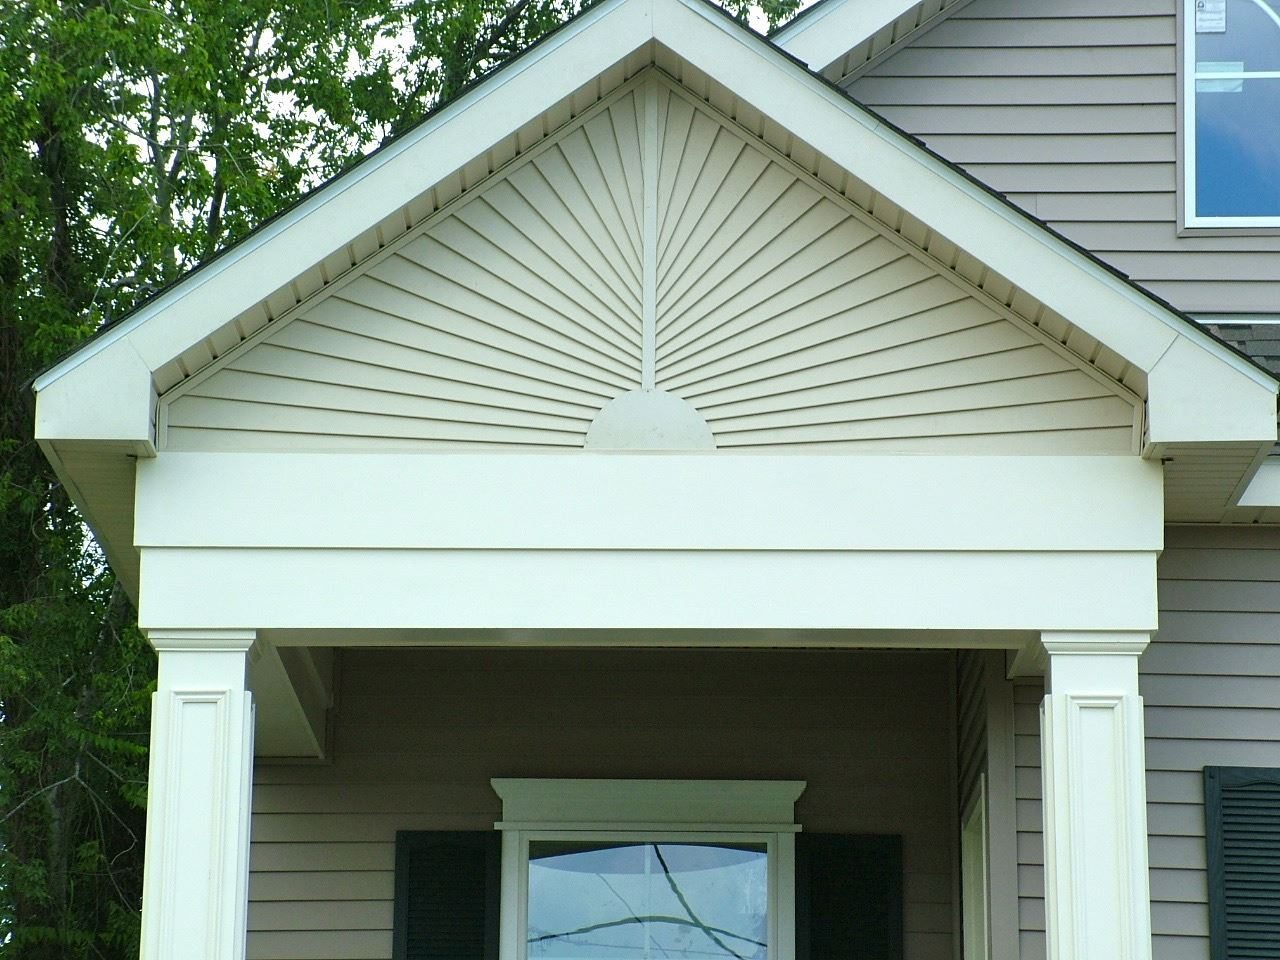 Architectural Commercial Exterior Decorative Trim : Exterior home improvement contractors in new orleans